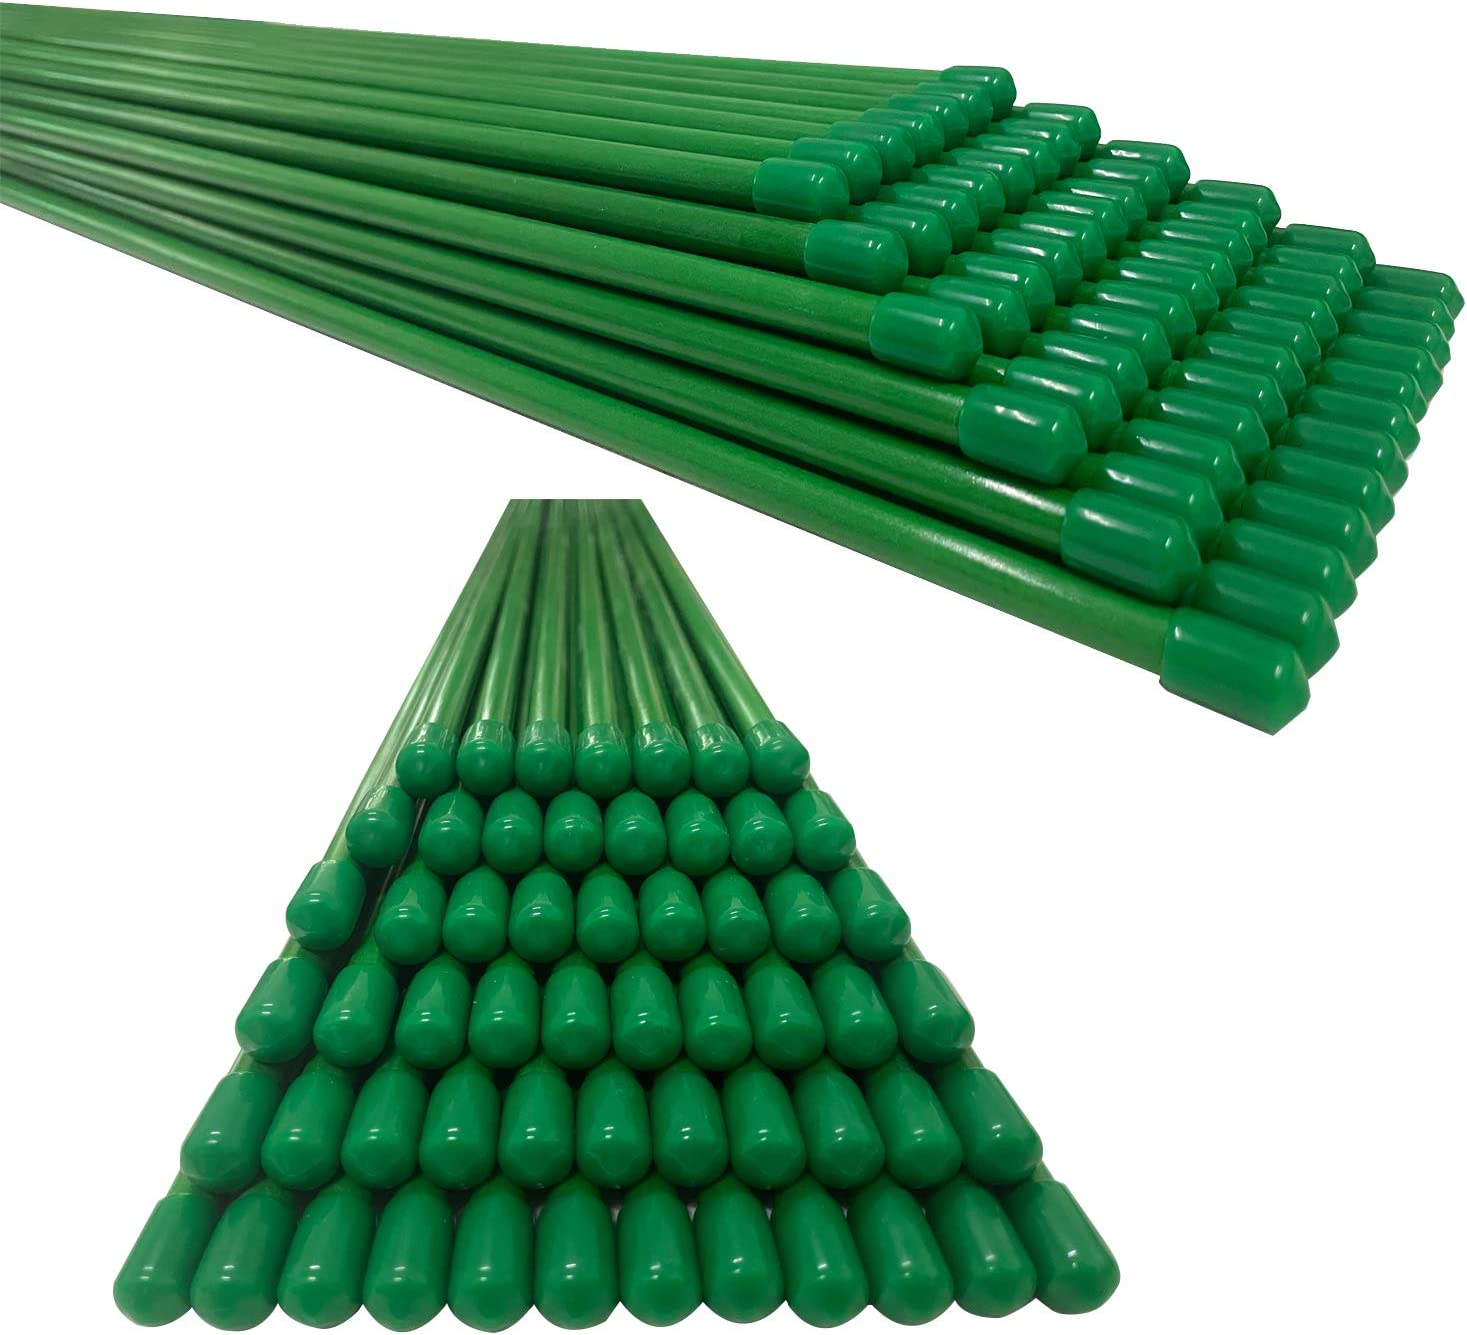 YOYORUN Garden Stakes 5FT,Plant Stakes,Tomato Stakes,Fiberglass Material,Strong and Durable,Will Never Rust,Pack of 20